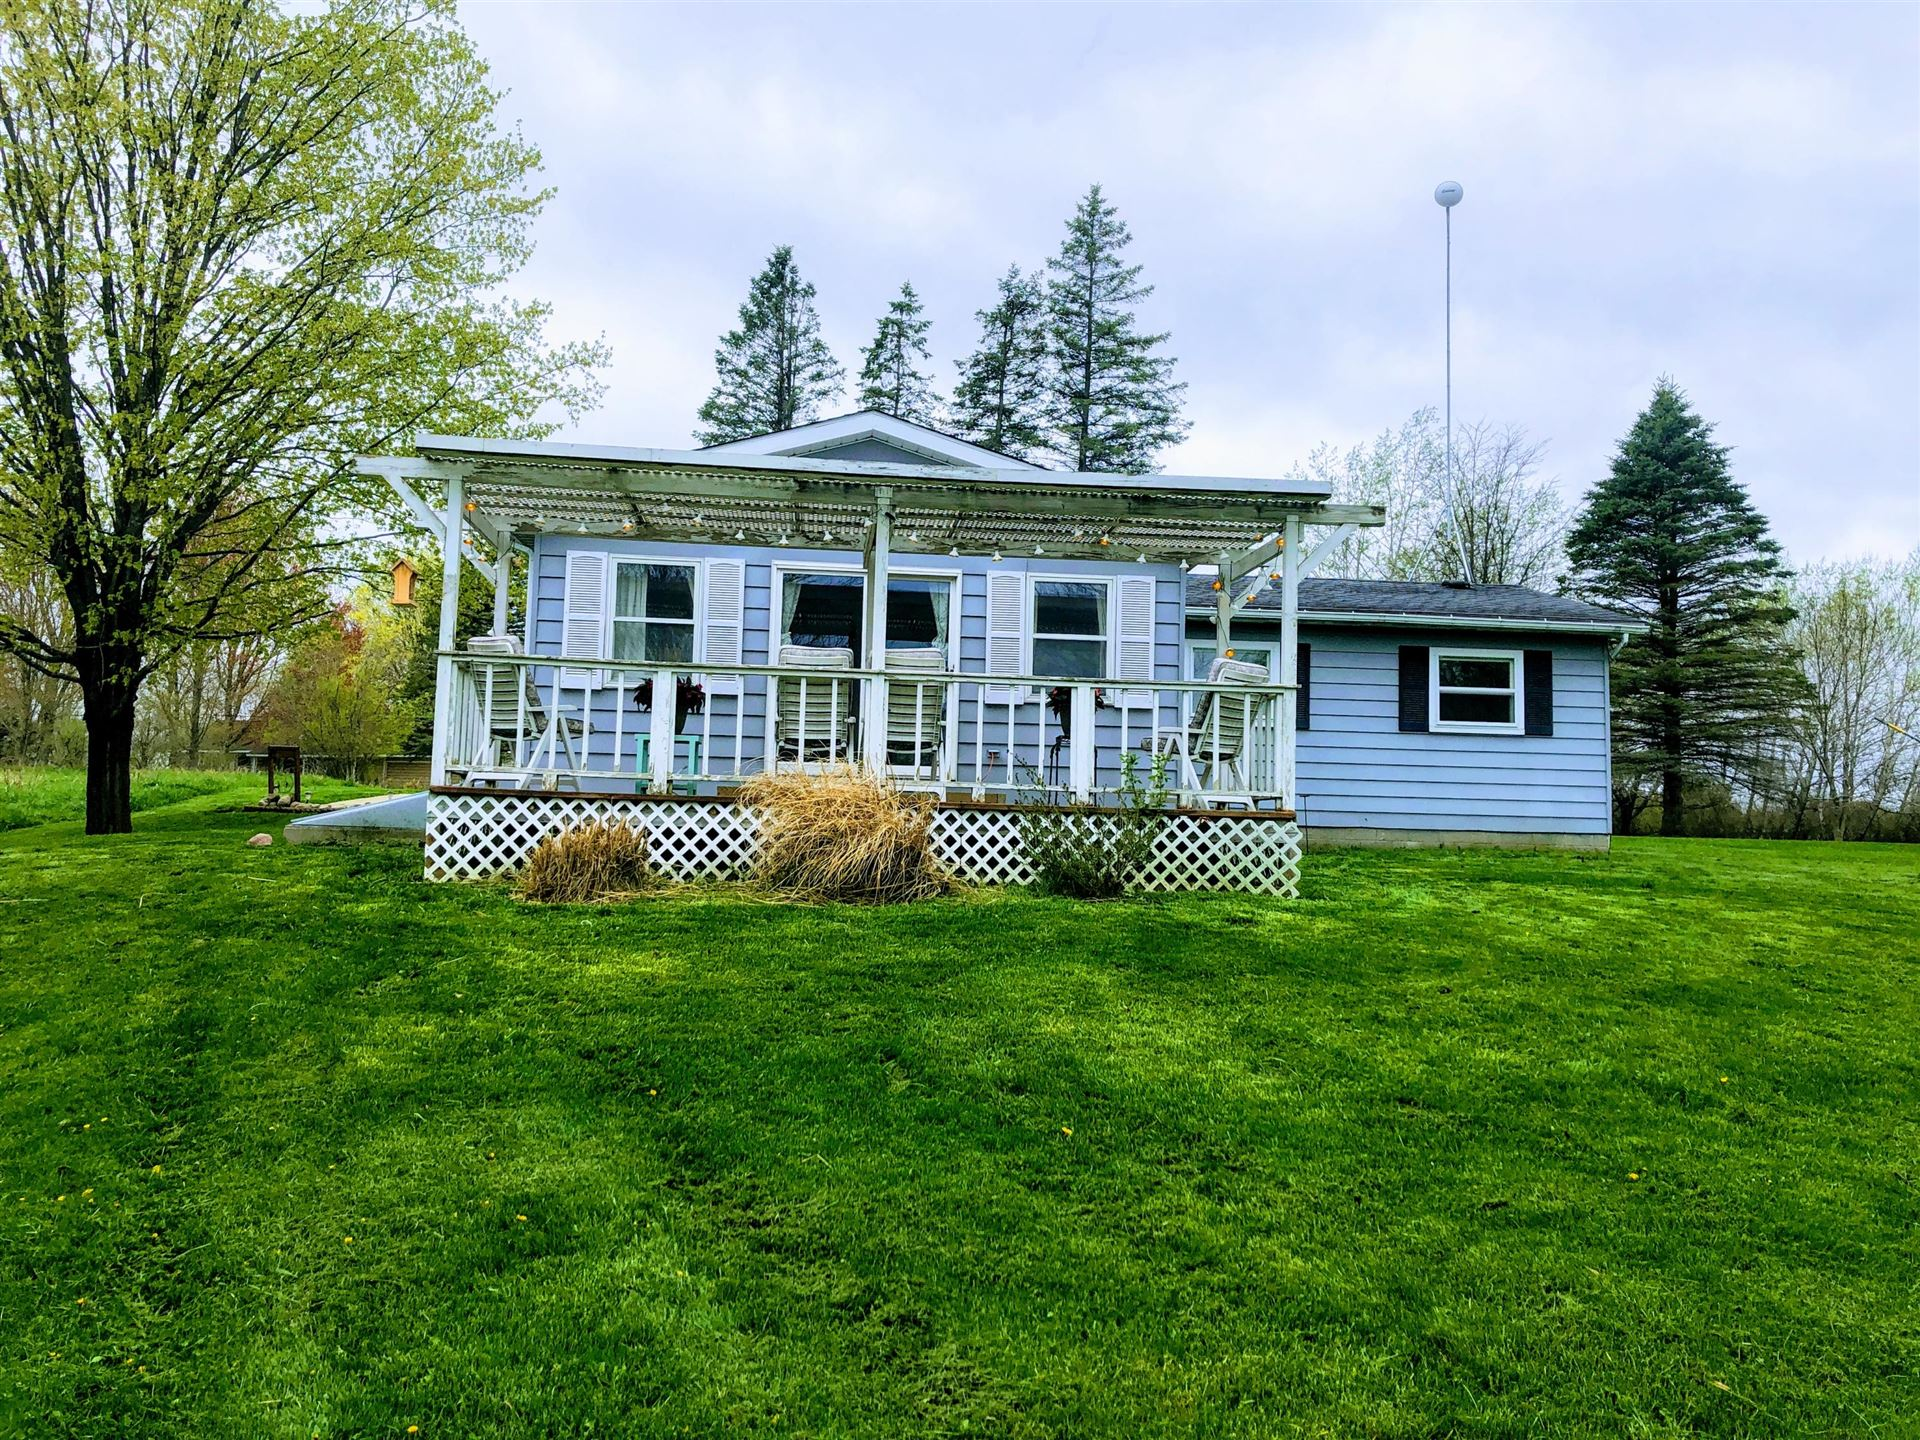 9471 Wasco Cove, Evart, MI 49631 - MLS#: 21016091